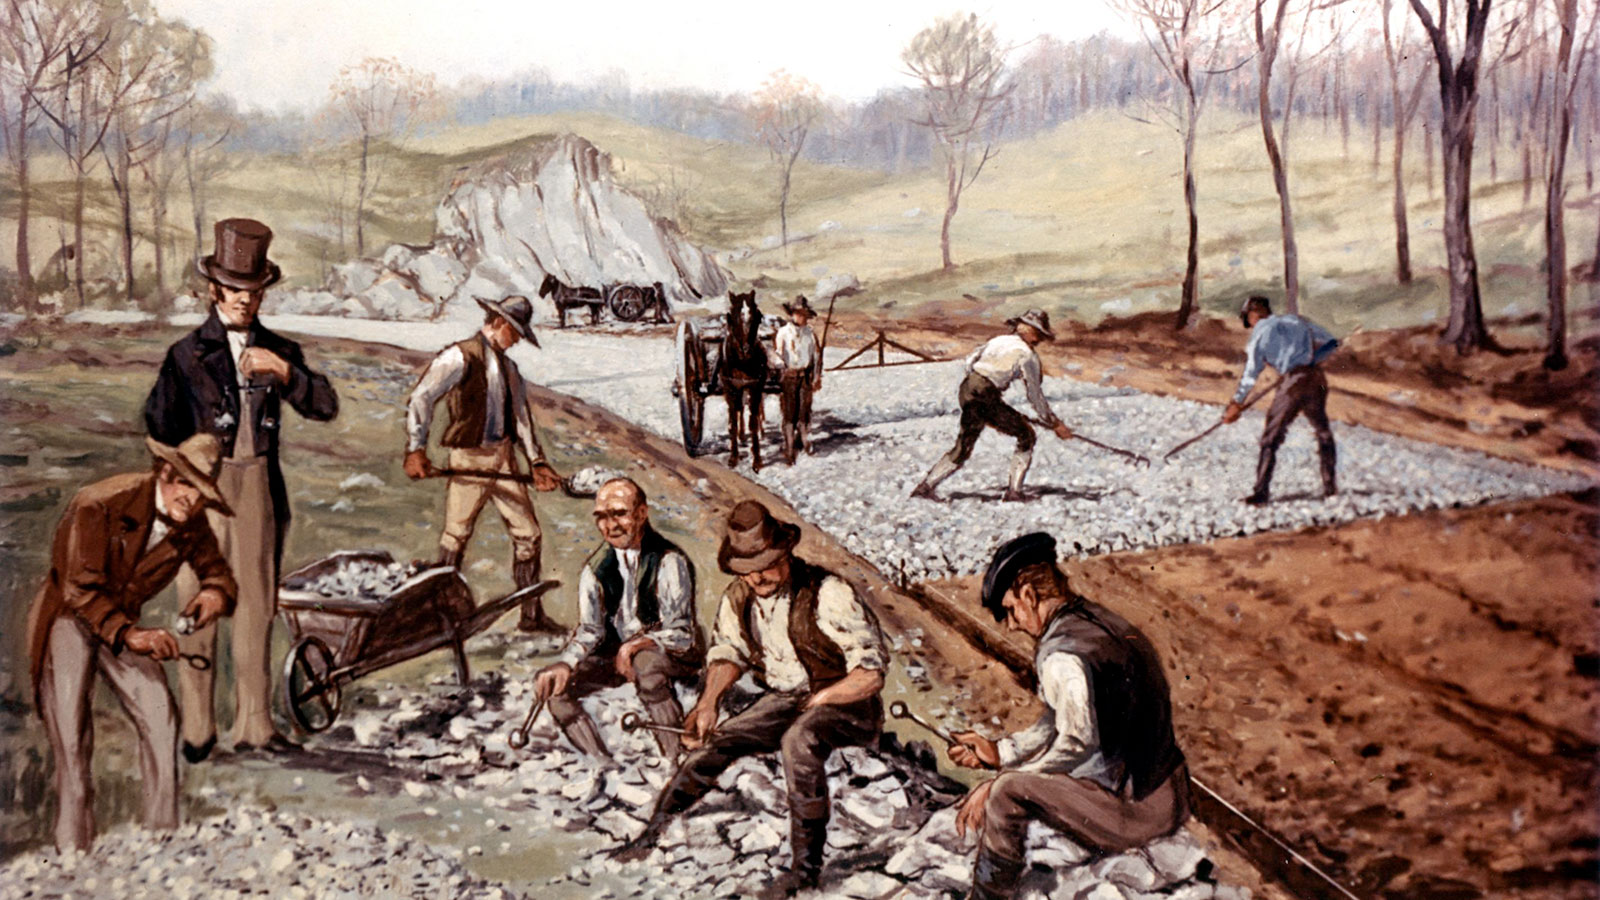 Carl Rakeman, 'First American Macadam Road,' 1823, depicting workers constructing the Boonsborough Turnpike Road between Hagerstown and Boonsboro, Maryland. Courtesy of the Federal Highway Administration.